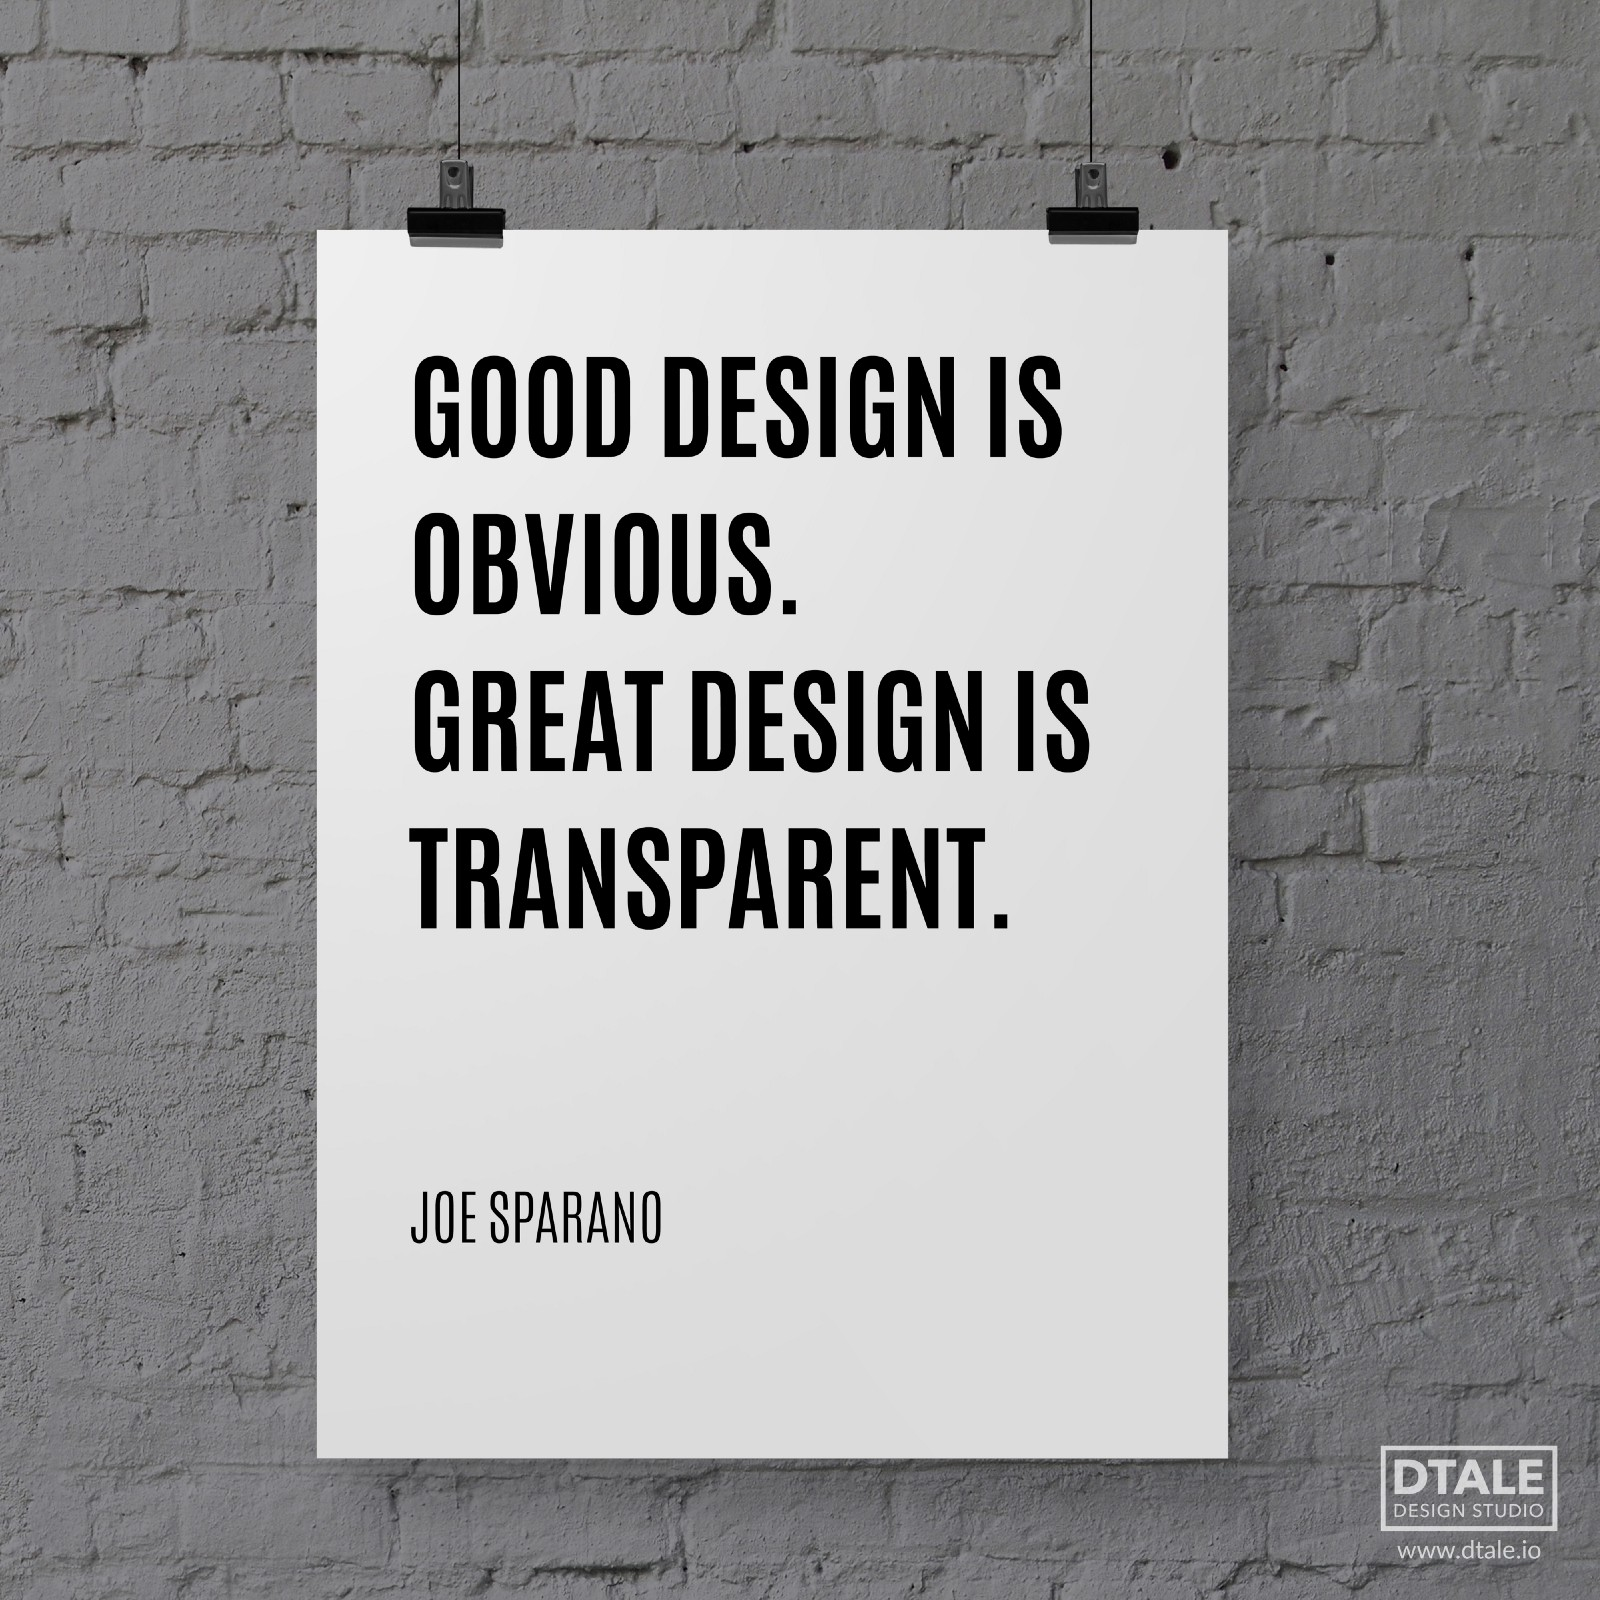 20 Inspiring Quotes Every Designer Should Know The Productivity